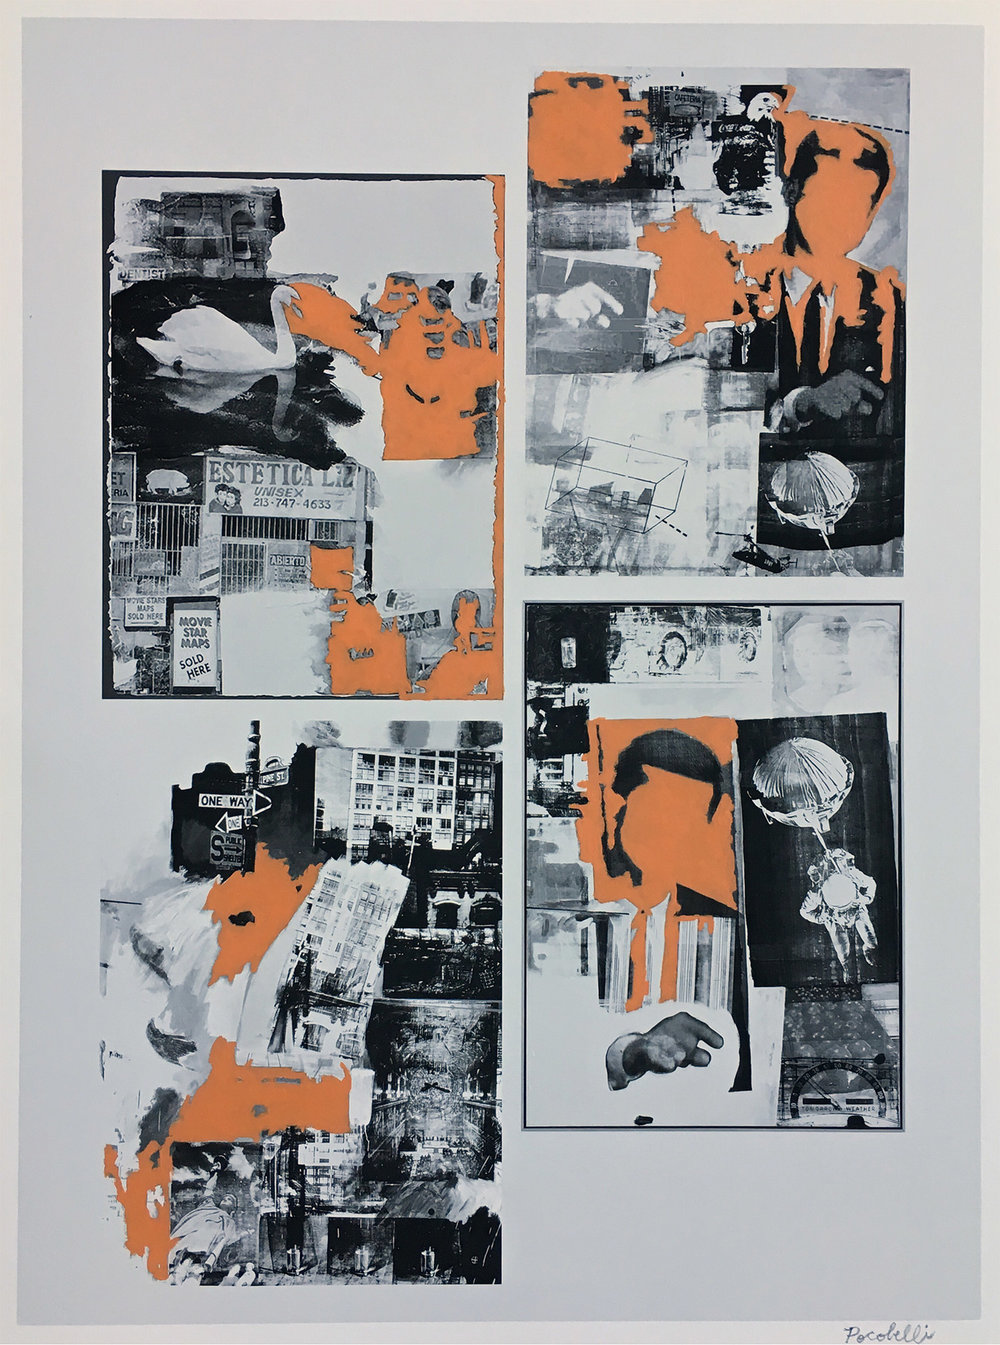 """""""q=robert+rauschenberg"""", 35 cm x 46 cm, inkjet and acrylic paint on hahnemuhle paper."""